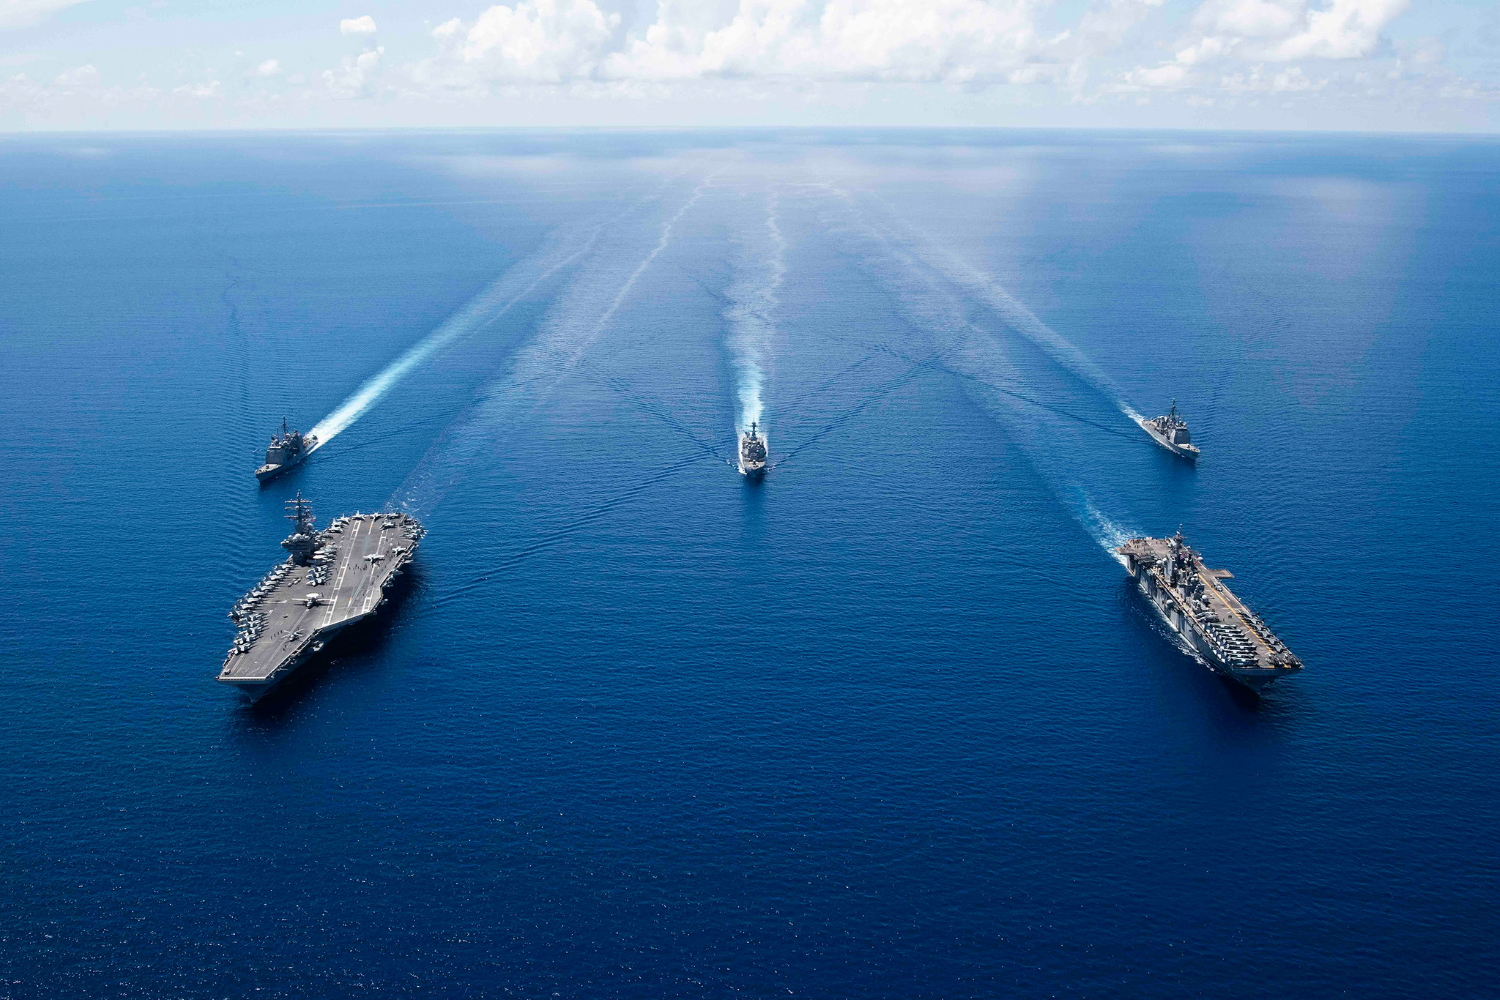 The aircraft carrier Ronald Reagan, left, and the amphibious assault ship Boxer as well as ships from the Ronald Reagan Carrier Strike Group and the Boxer Amphibious Ready Group transit the South China Sea on Oct. 6, 2019. (MC2 Erwin Jacob V. Miciano/U.S. Navy)